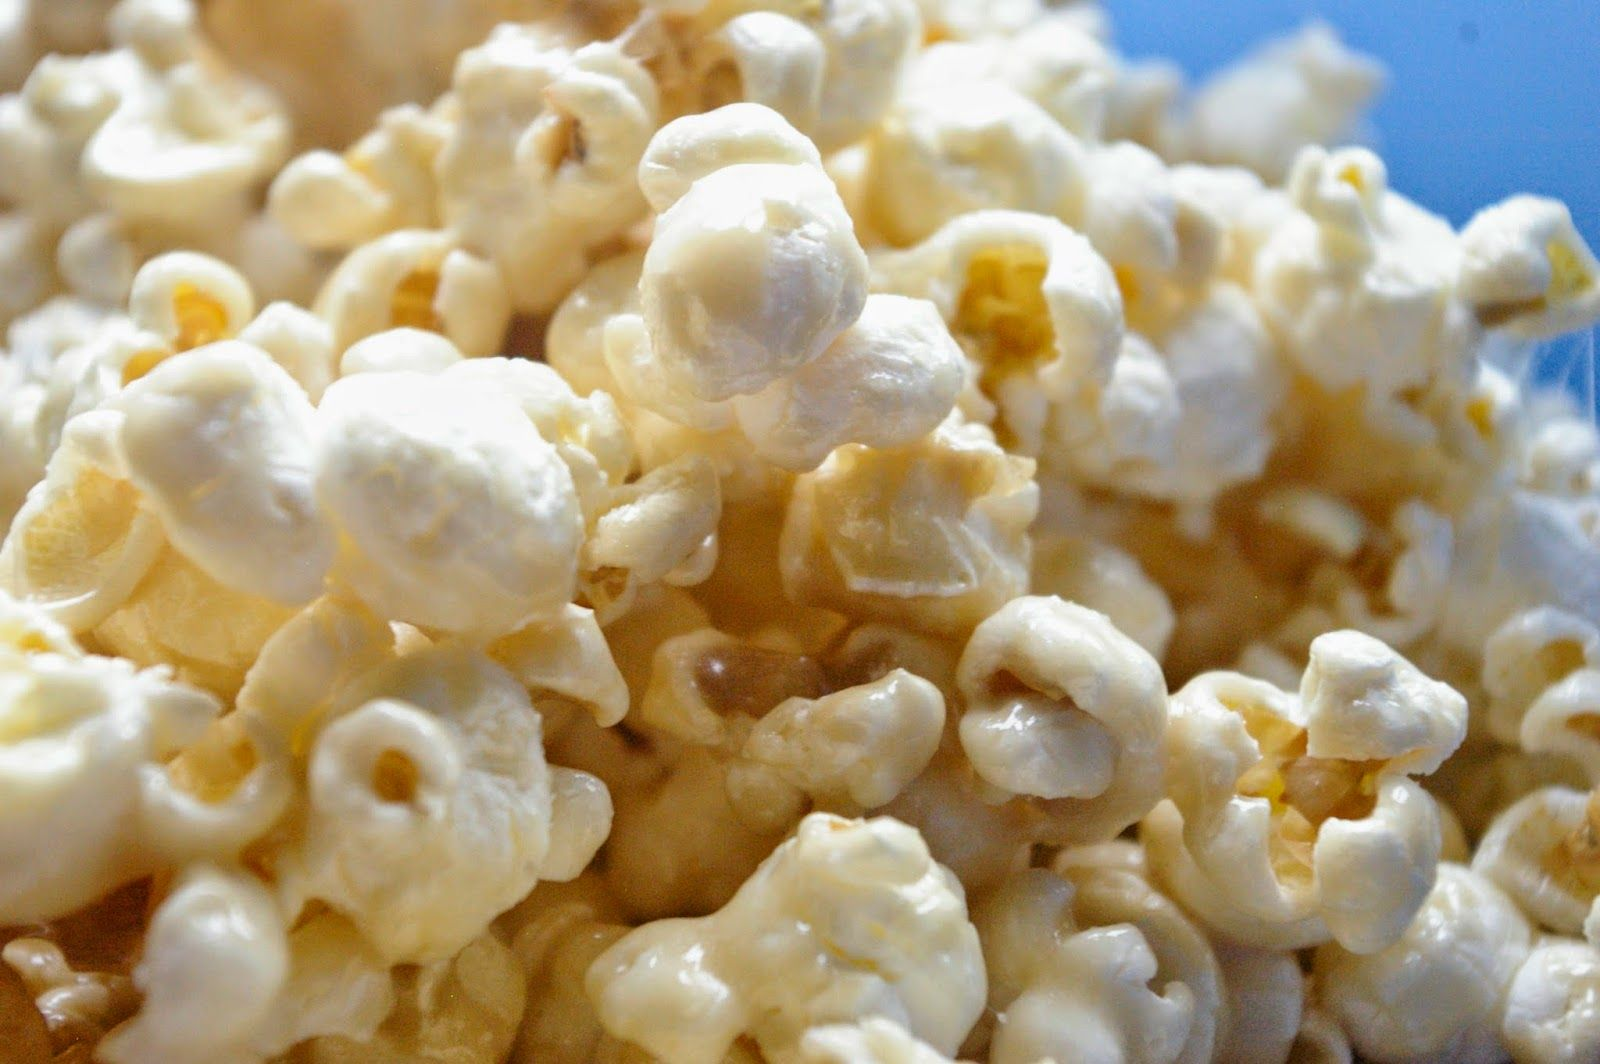 The famous (at our house) Sticky Popcorn!  1 batch of Popcorn(12 cups), 1/2 cup of butter, 1/2 cup of brown sugar, 9-12 marshmallows.  Melt, mix together, and enjoy the sweet chewiness of this naughty bowl of popcorn!